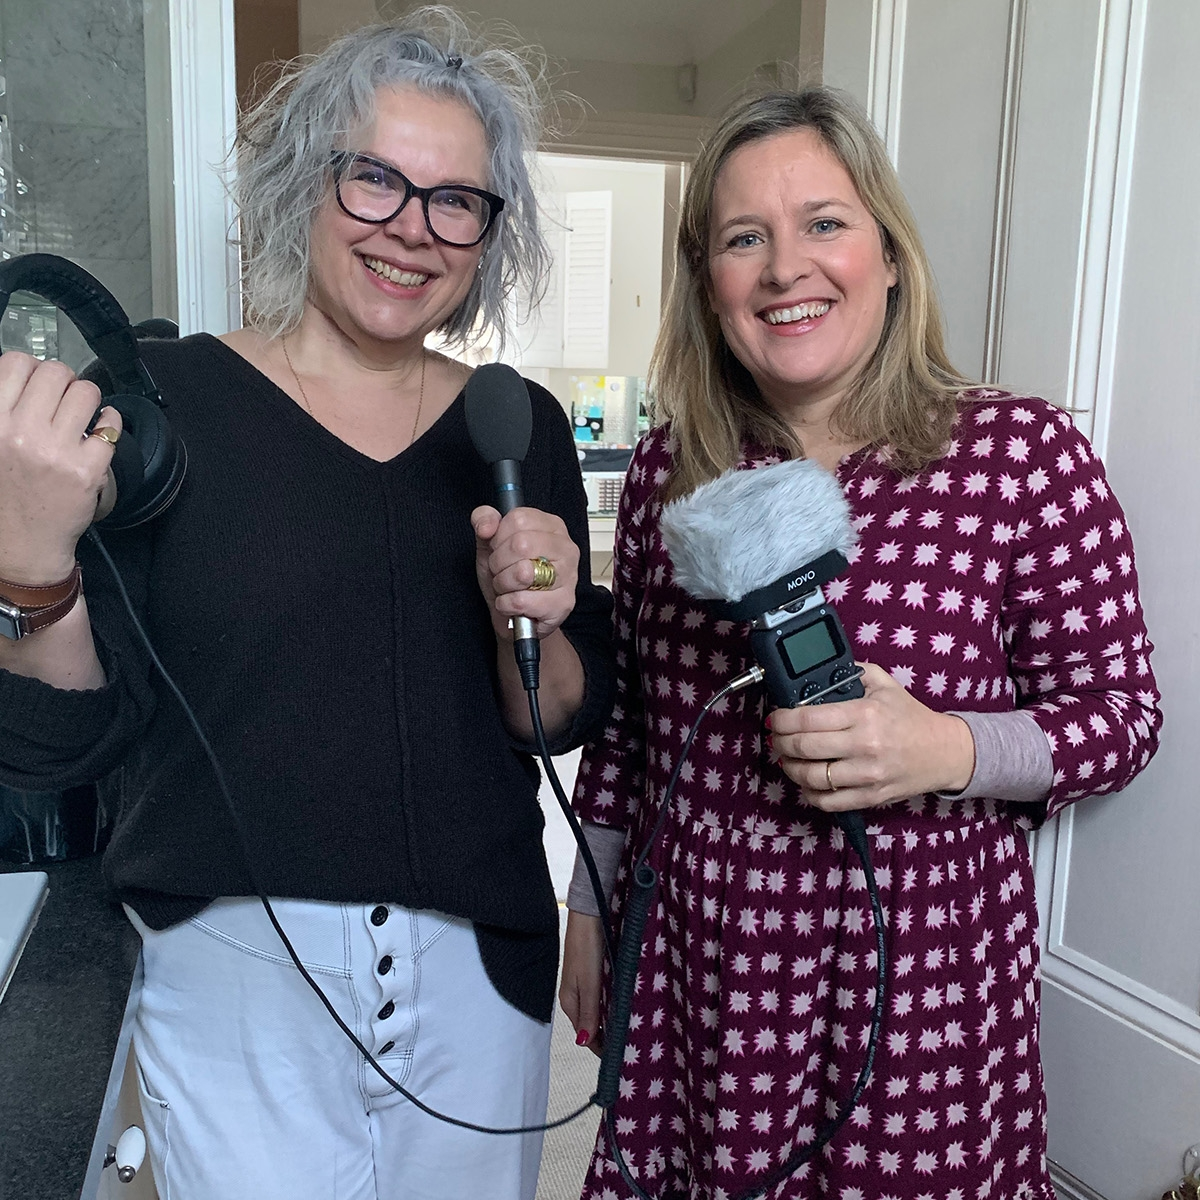 Another episode of the Great Indoors podcast recorded with Kate Watson-Smyth and Sophie Robinson. Discussing all things interiors as well as helpful and informative design advice. #sophierobinson #podcast #interiordesign #dfs